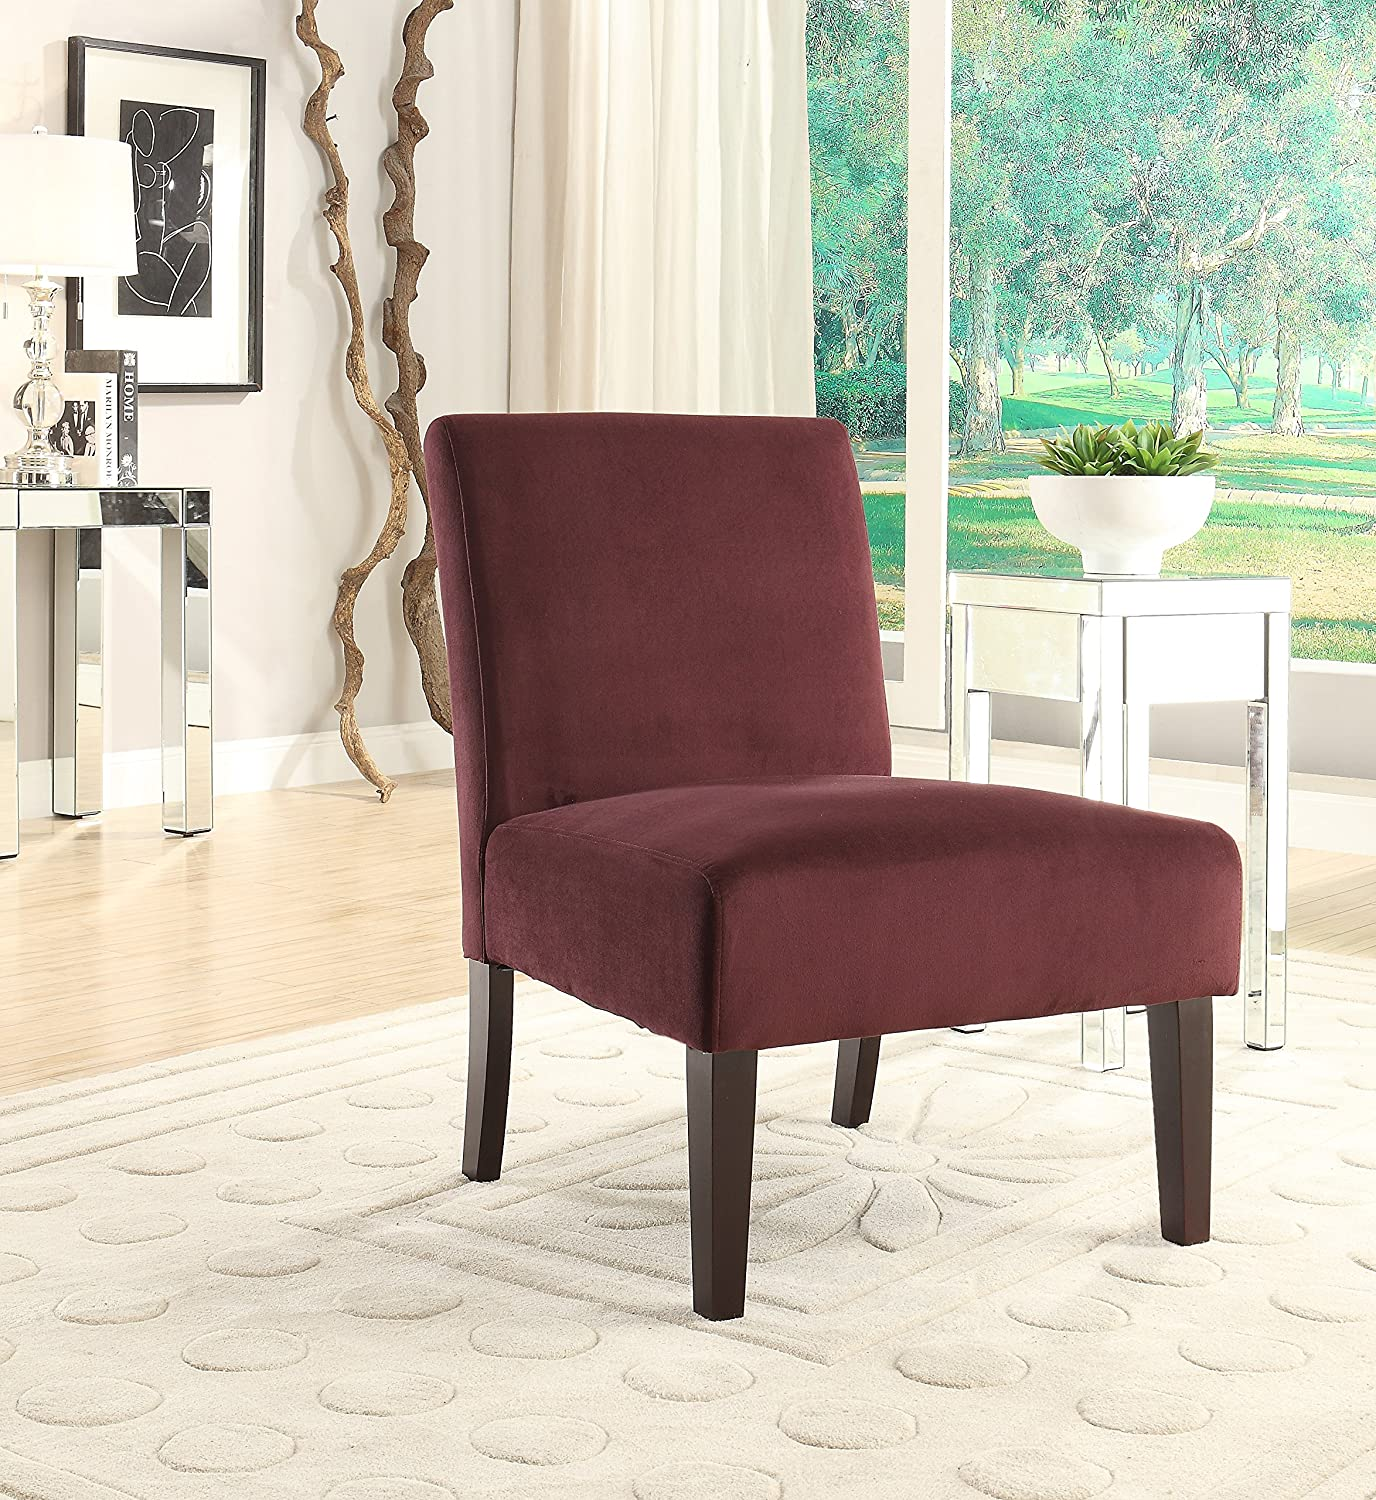 AVE SIX Laguna Accent Chair with Espresso Finish Solid Wood Legs, Port Velvet Fabric